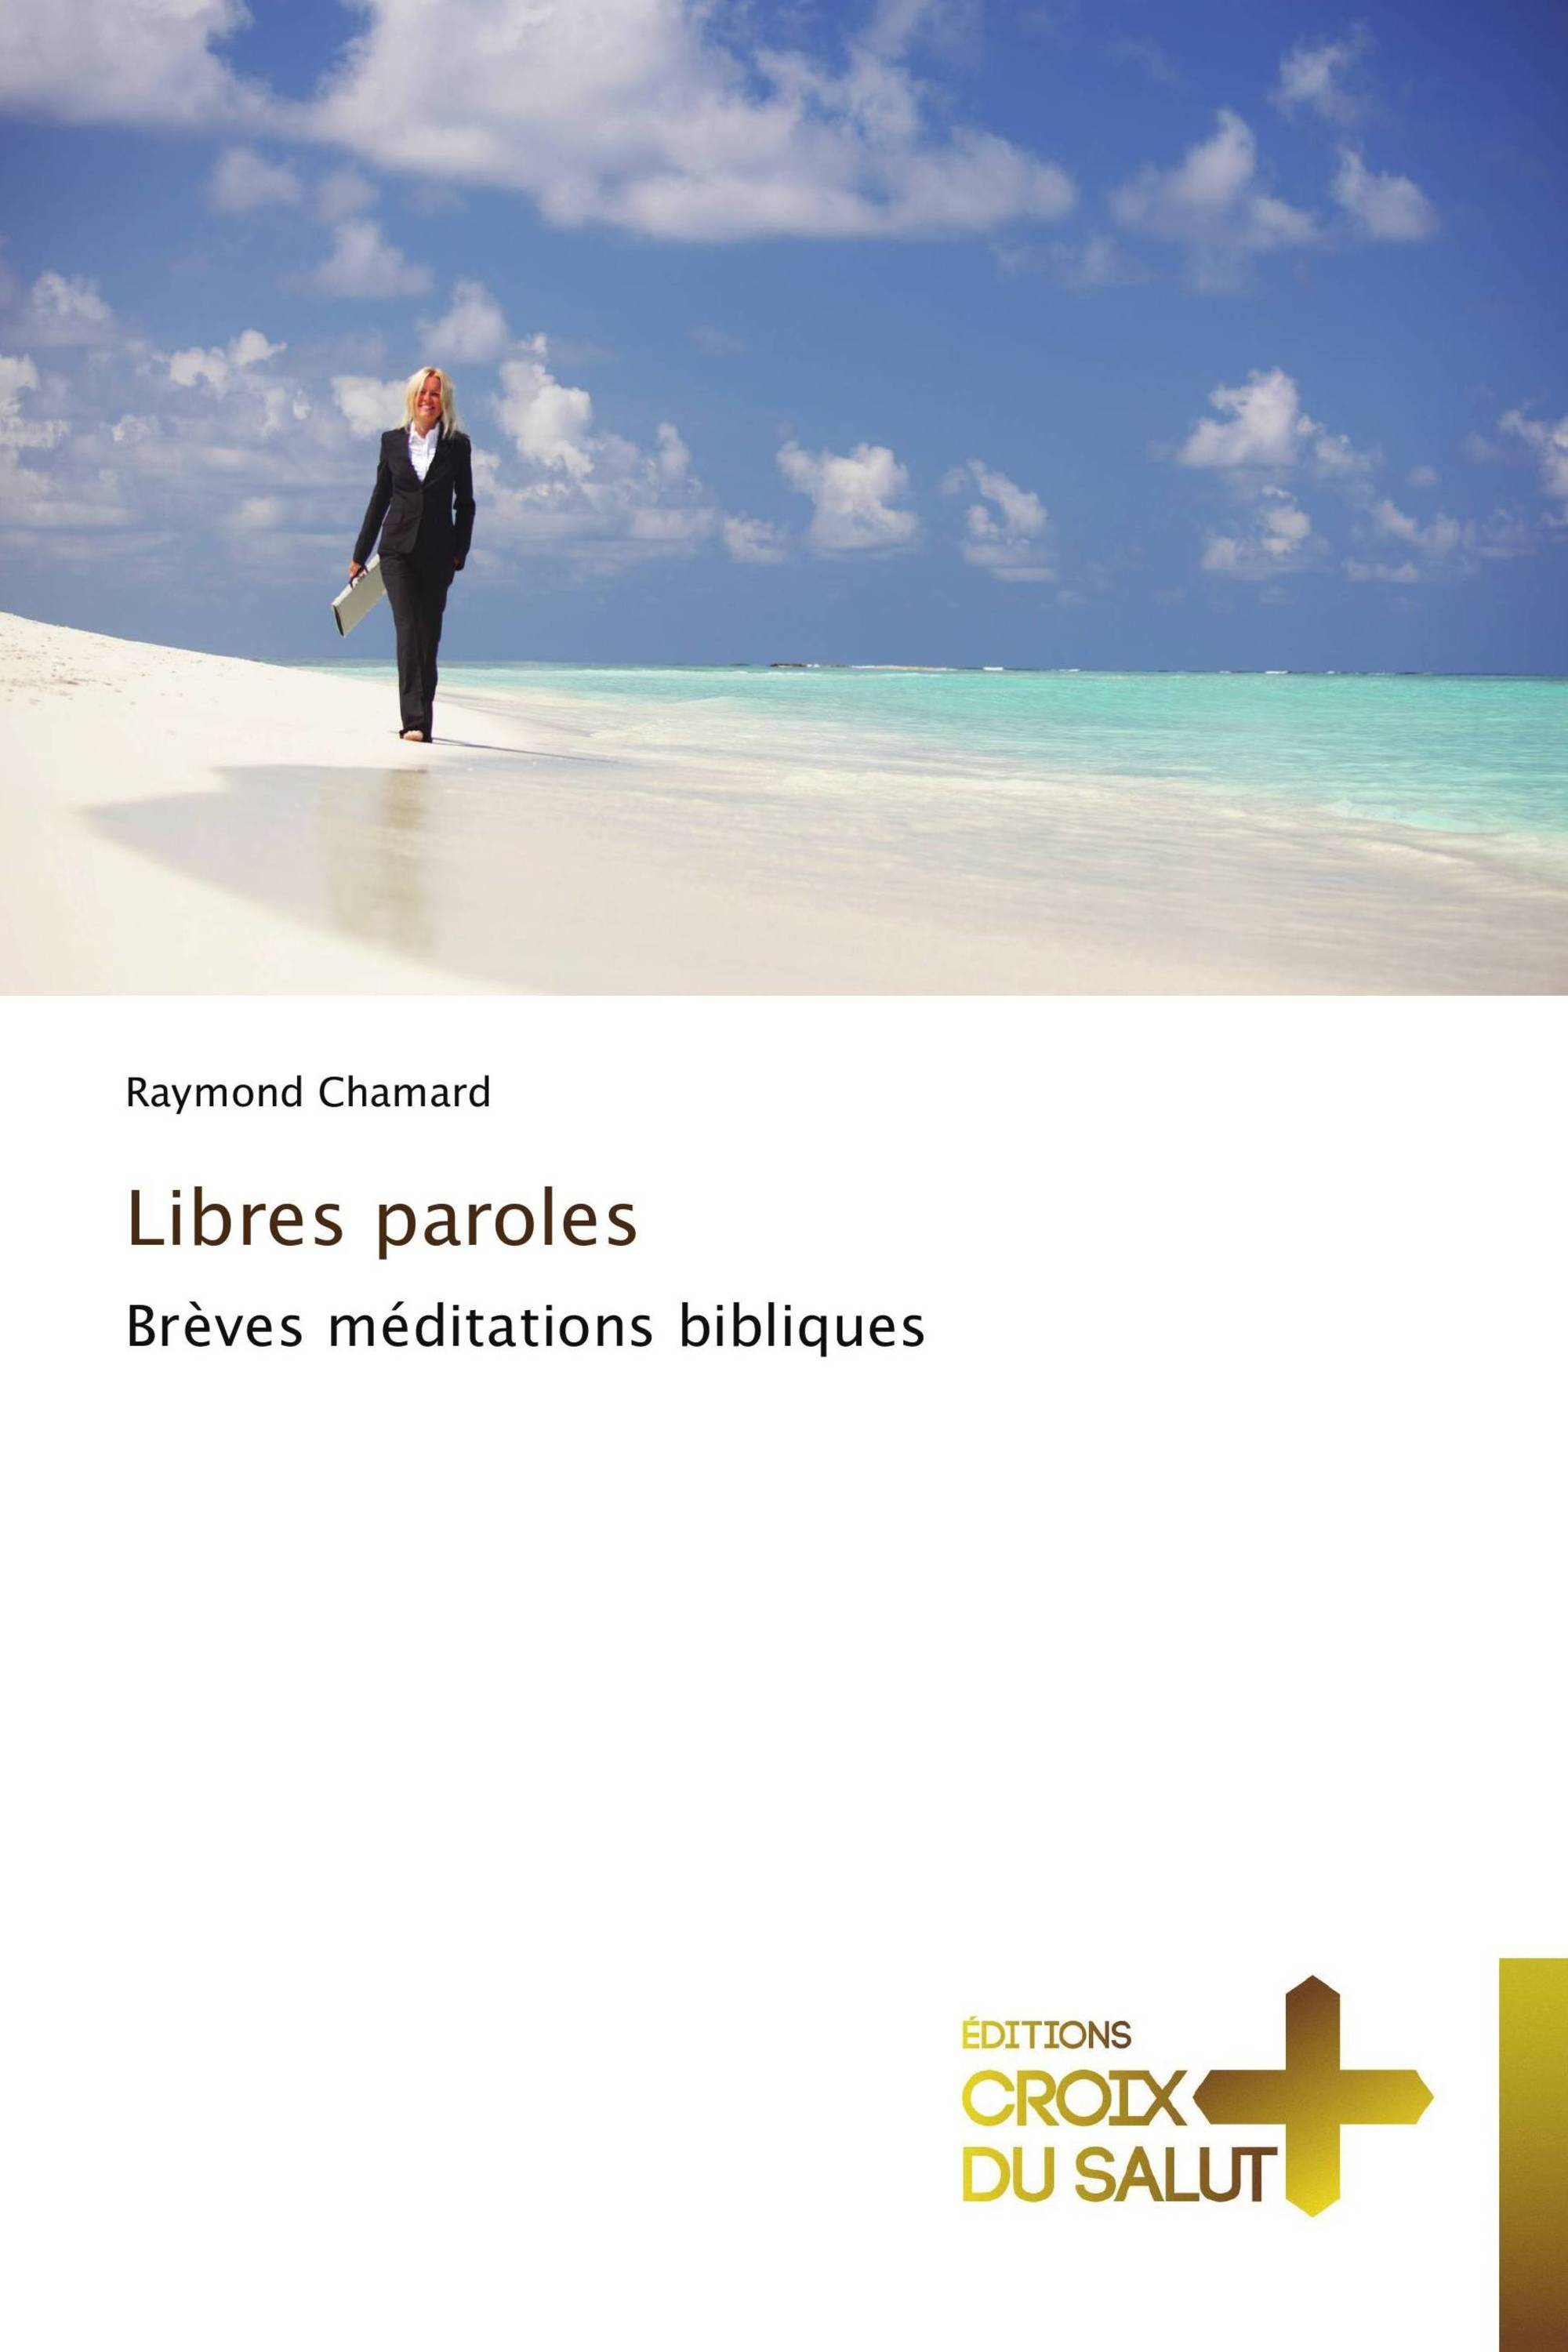 Libres paroles